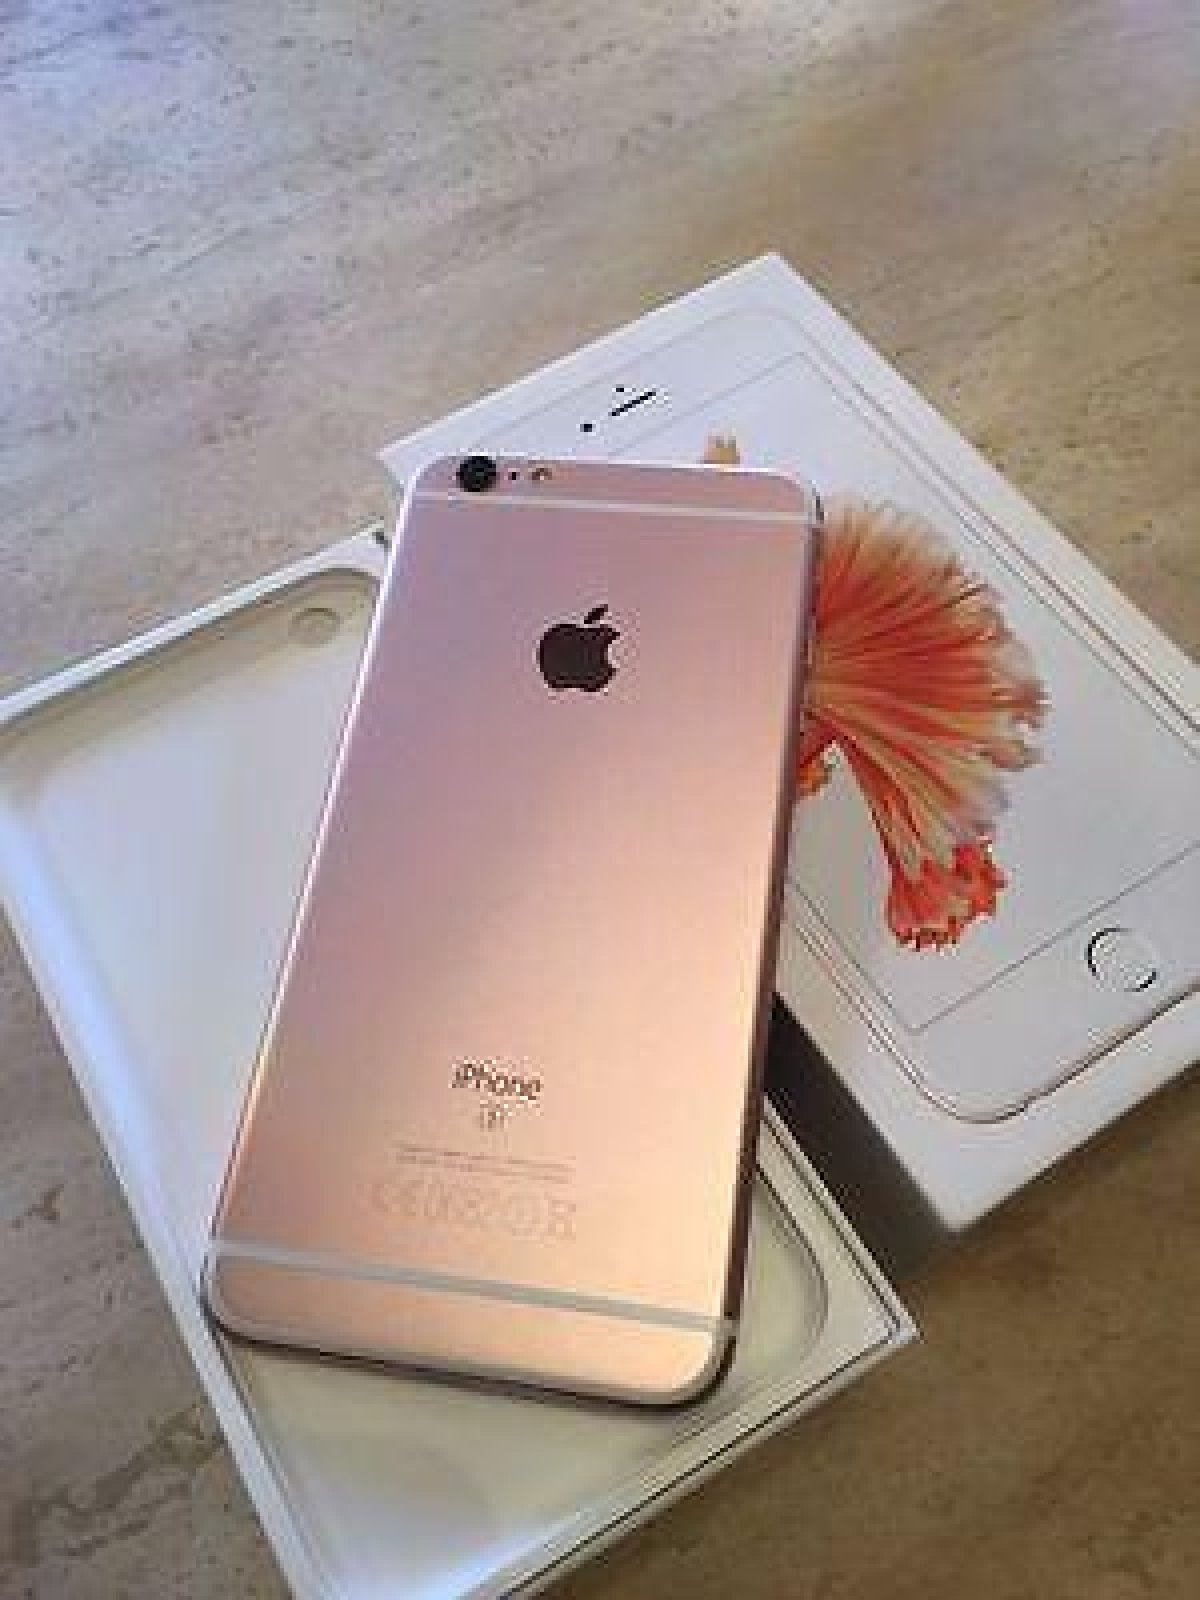 apple iphone 6s plus 128gb for sale in kingston kingston. Black Bedroom Furniture Sets. Home Design Ideas